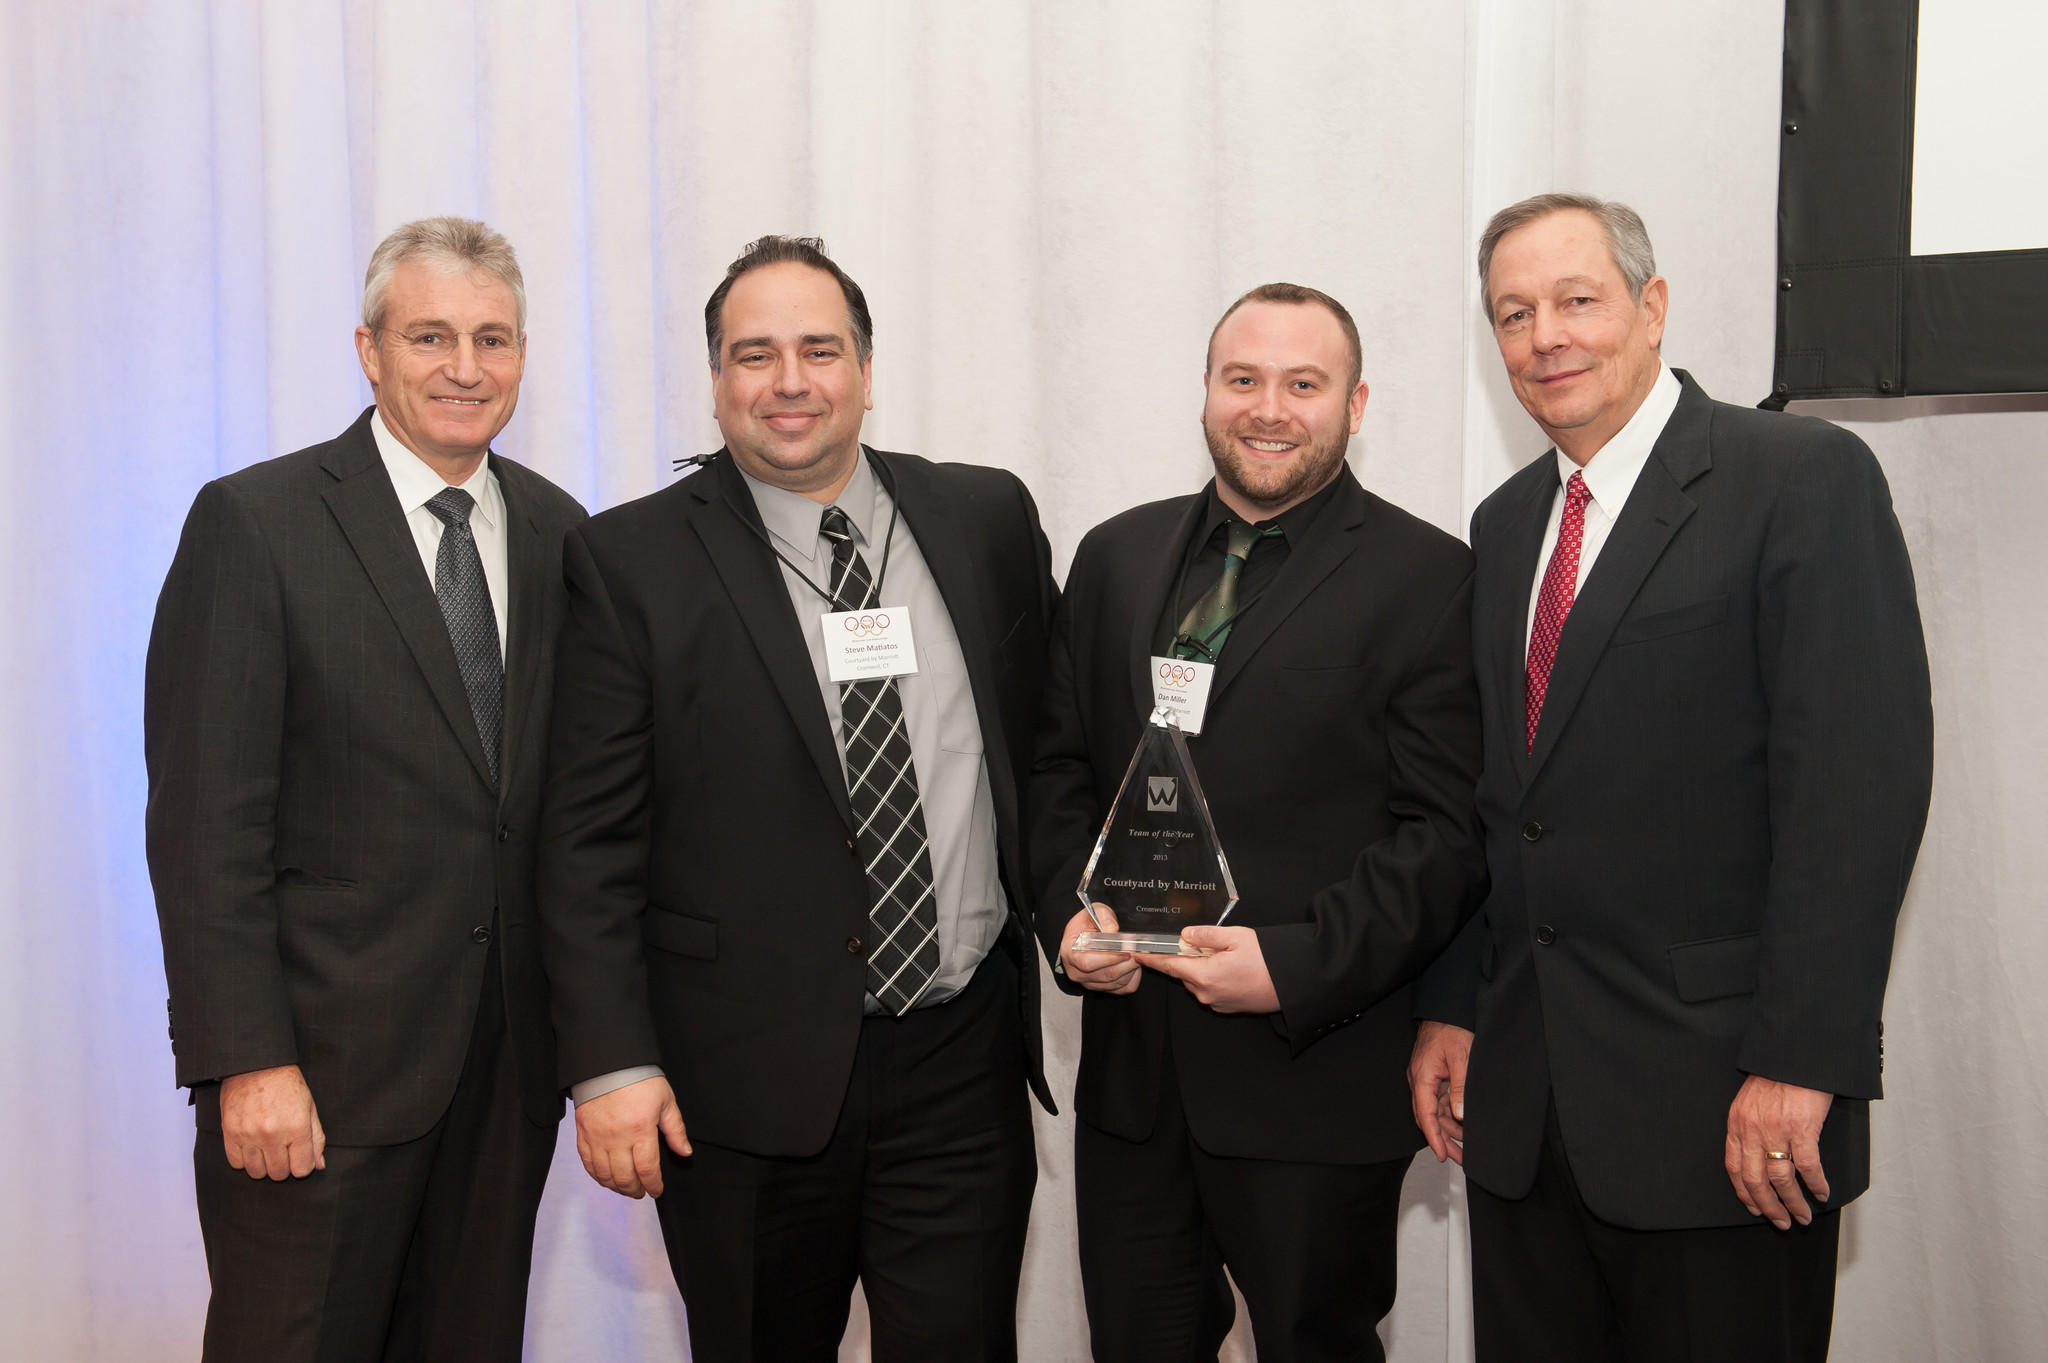 From left to right: Len Wolman, chairman & CEO, Waterford Group; Steve Matiatos, general manager, Courtyard Marriott Cromwell; Dan Miller, director of Sales, Courtyard Marriott Cromwell; and Rob Winchester, president & COO, Waterford Hotel Group.